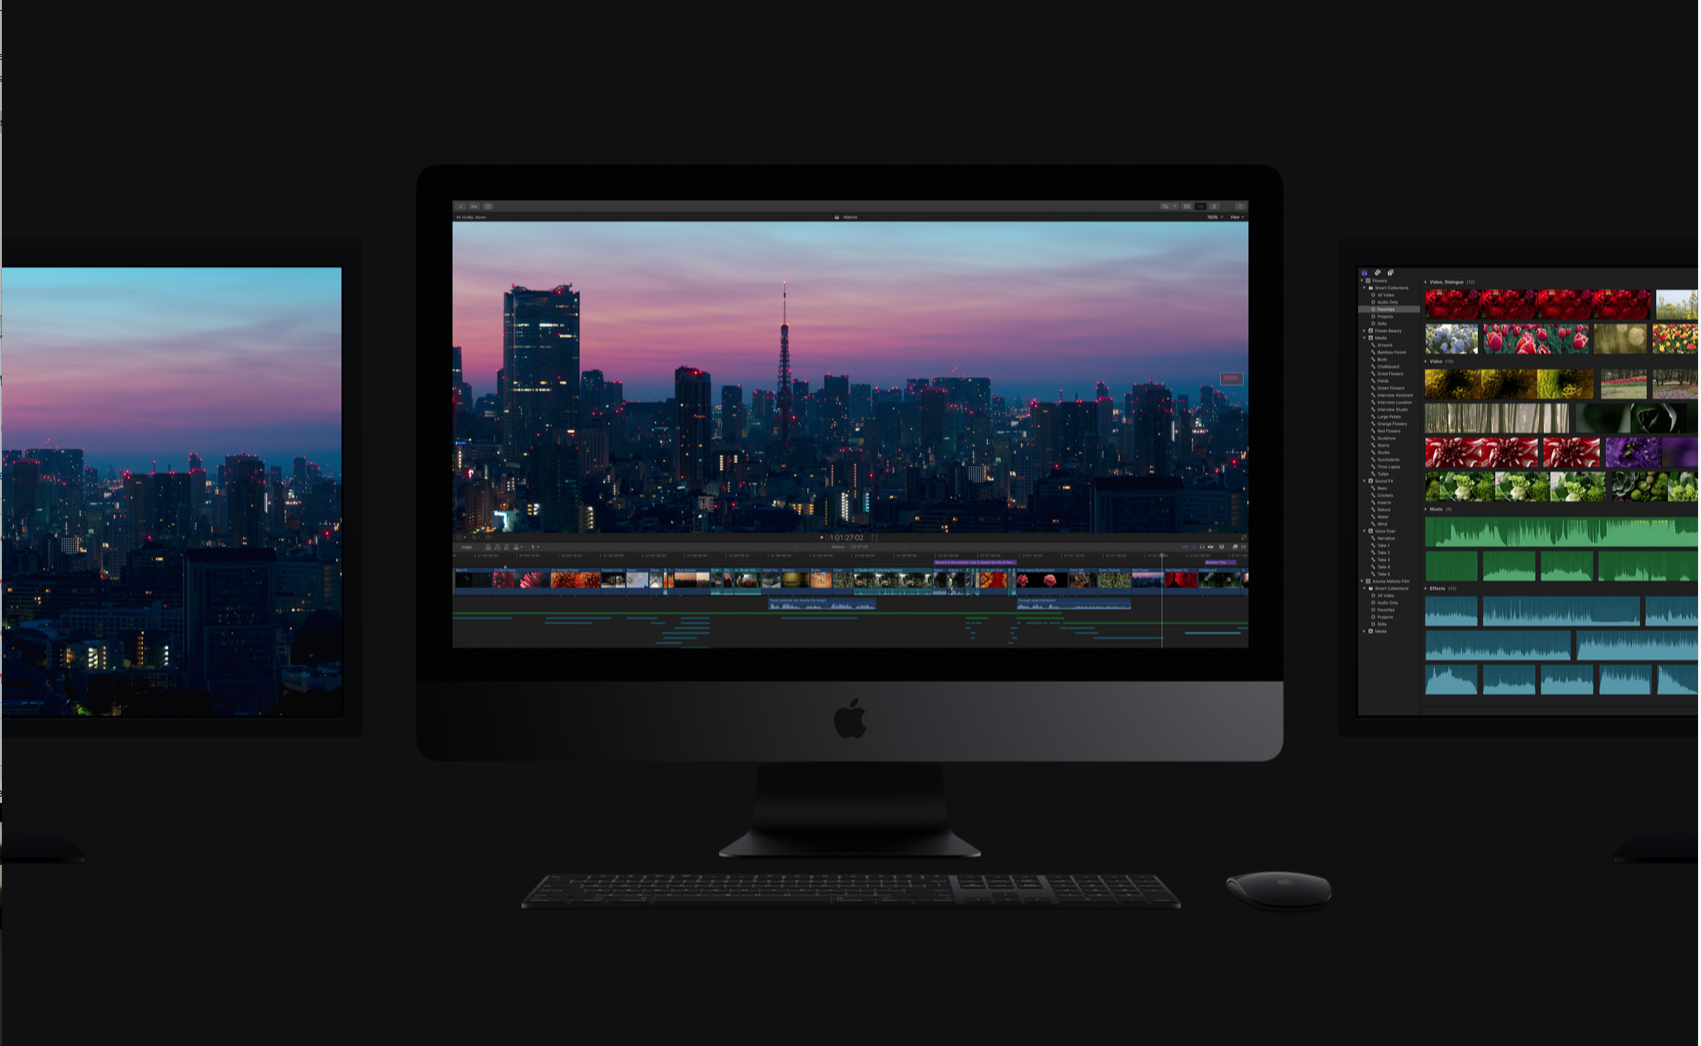 iMac Pro with two 5K displays running FCPX